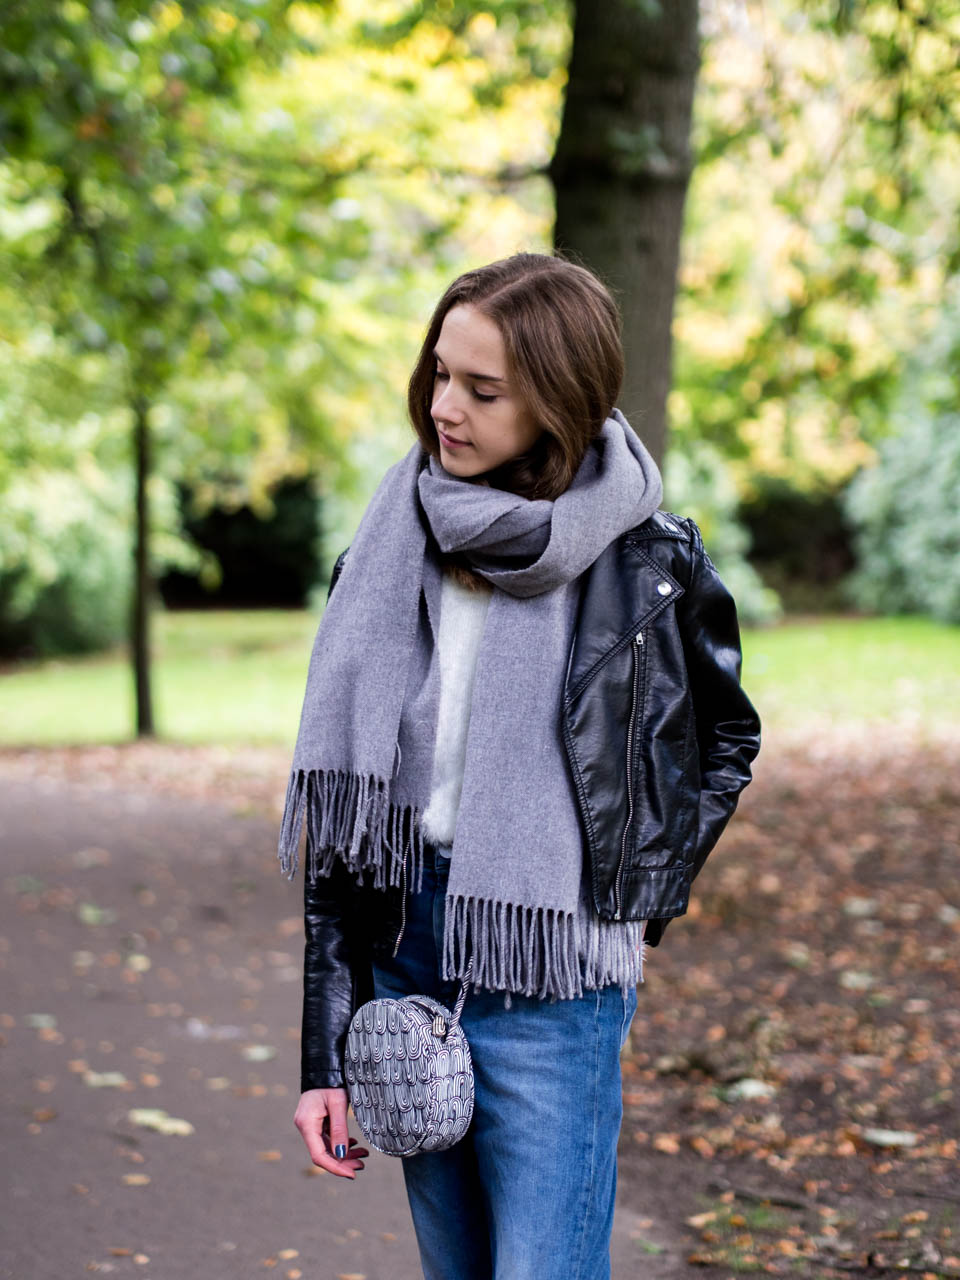 high-street-shopping-guide-affordable-fashion